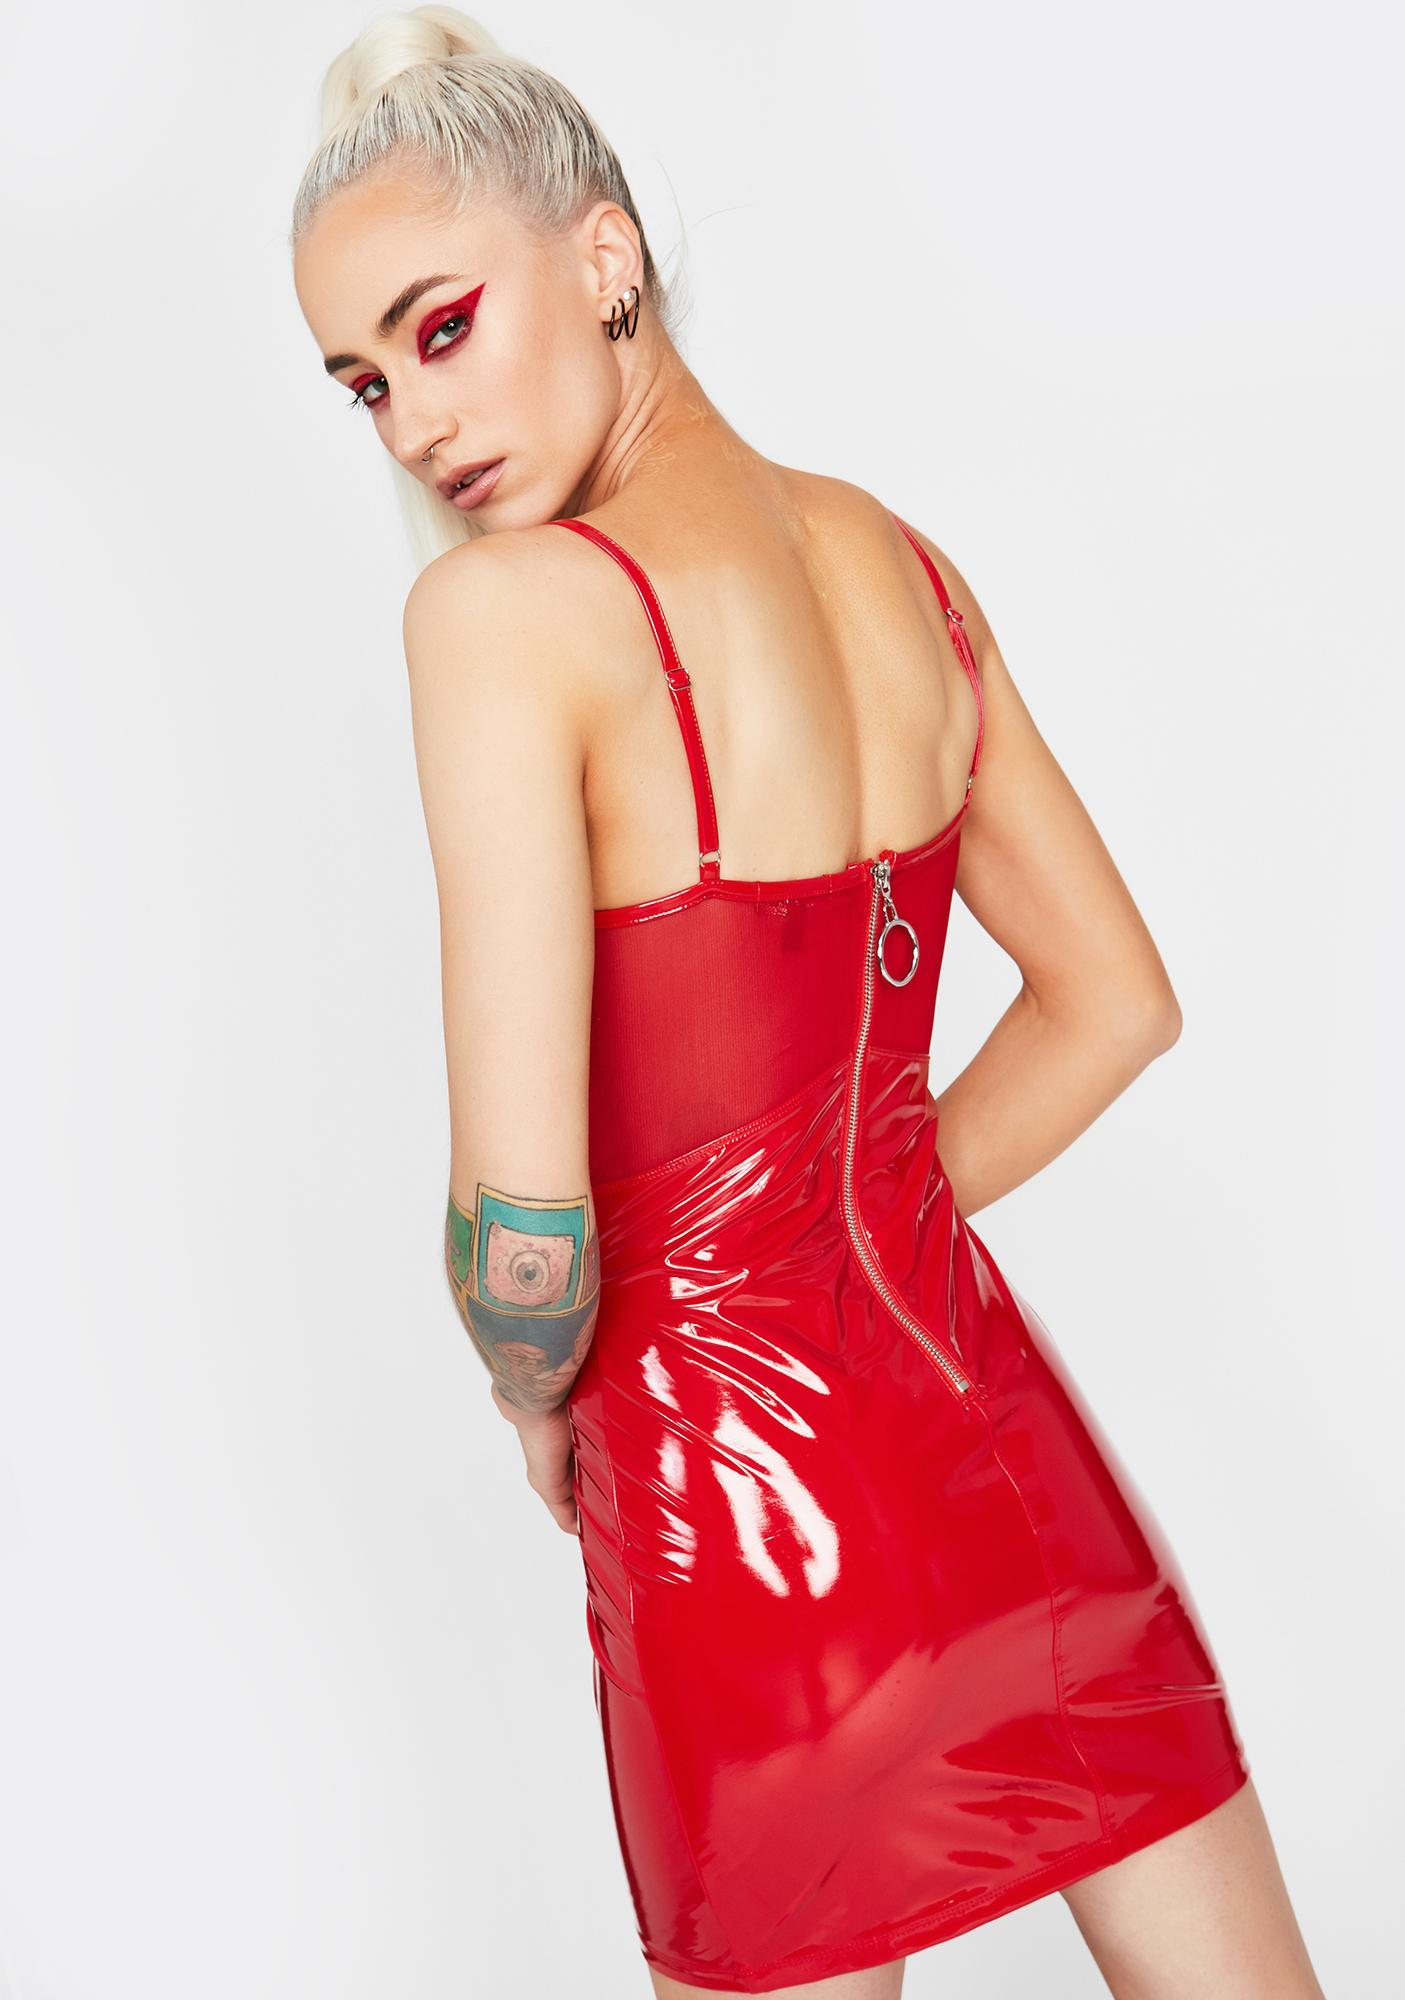 HOROSCOPEZ On Your Radar Vinyl Dress